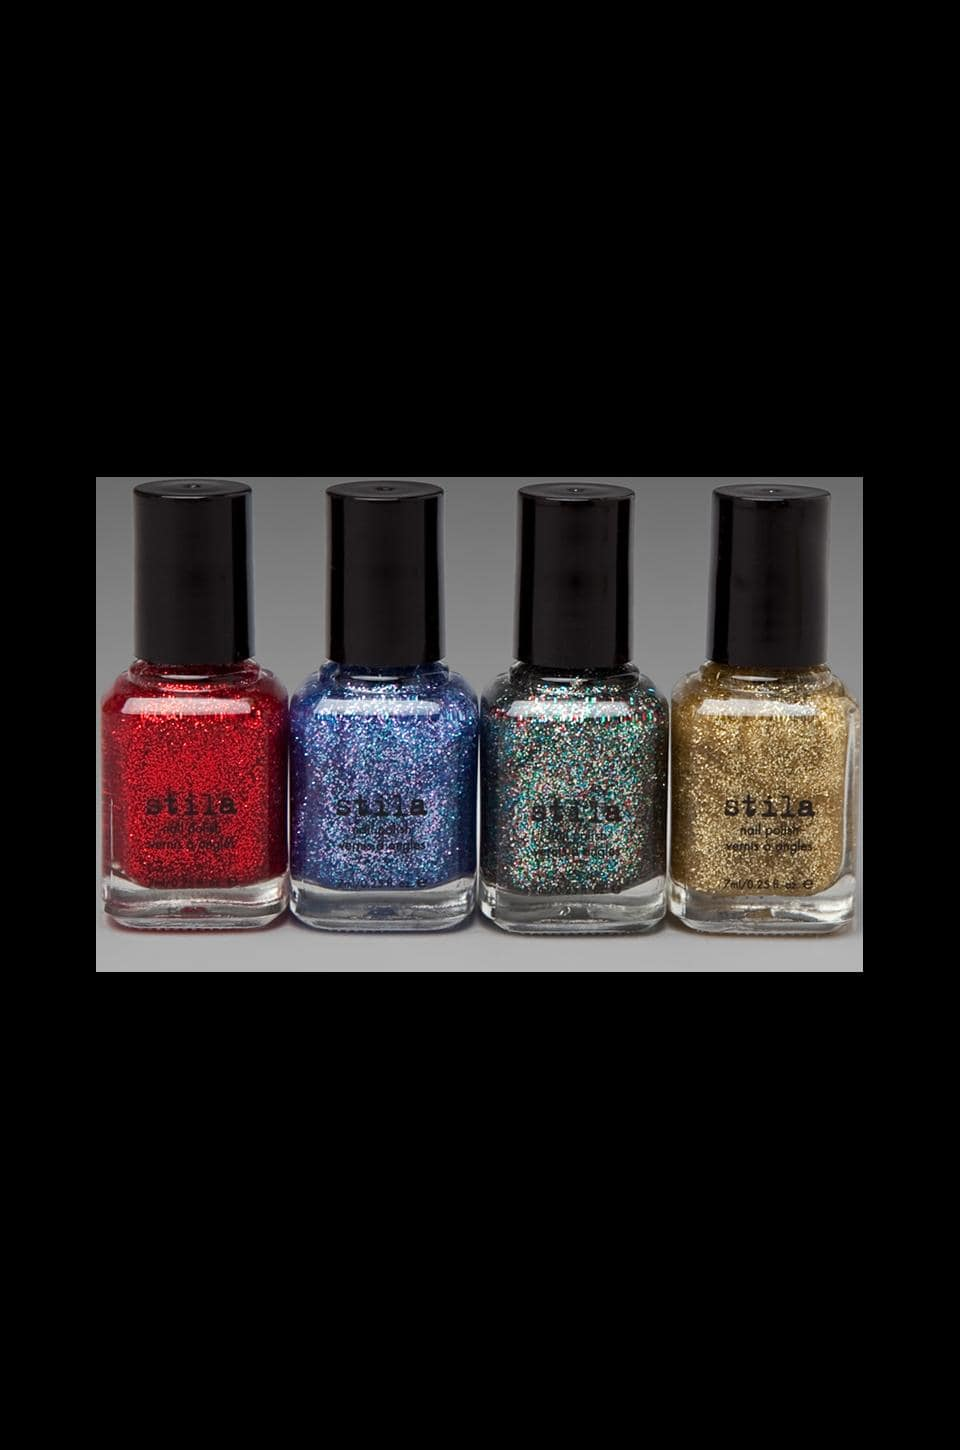 Stila Nail Polish Set in Daring